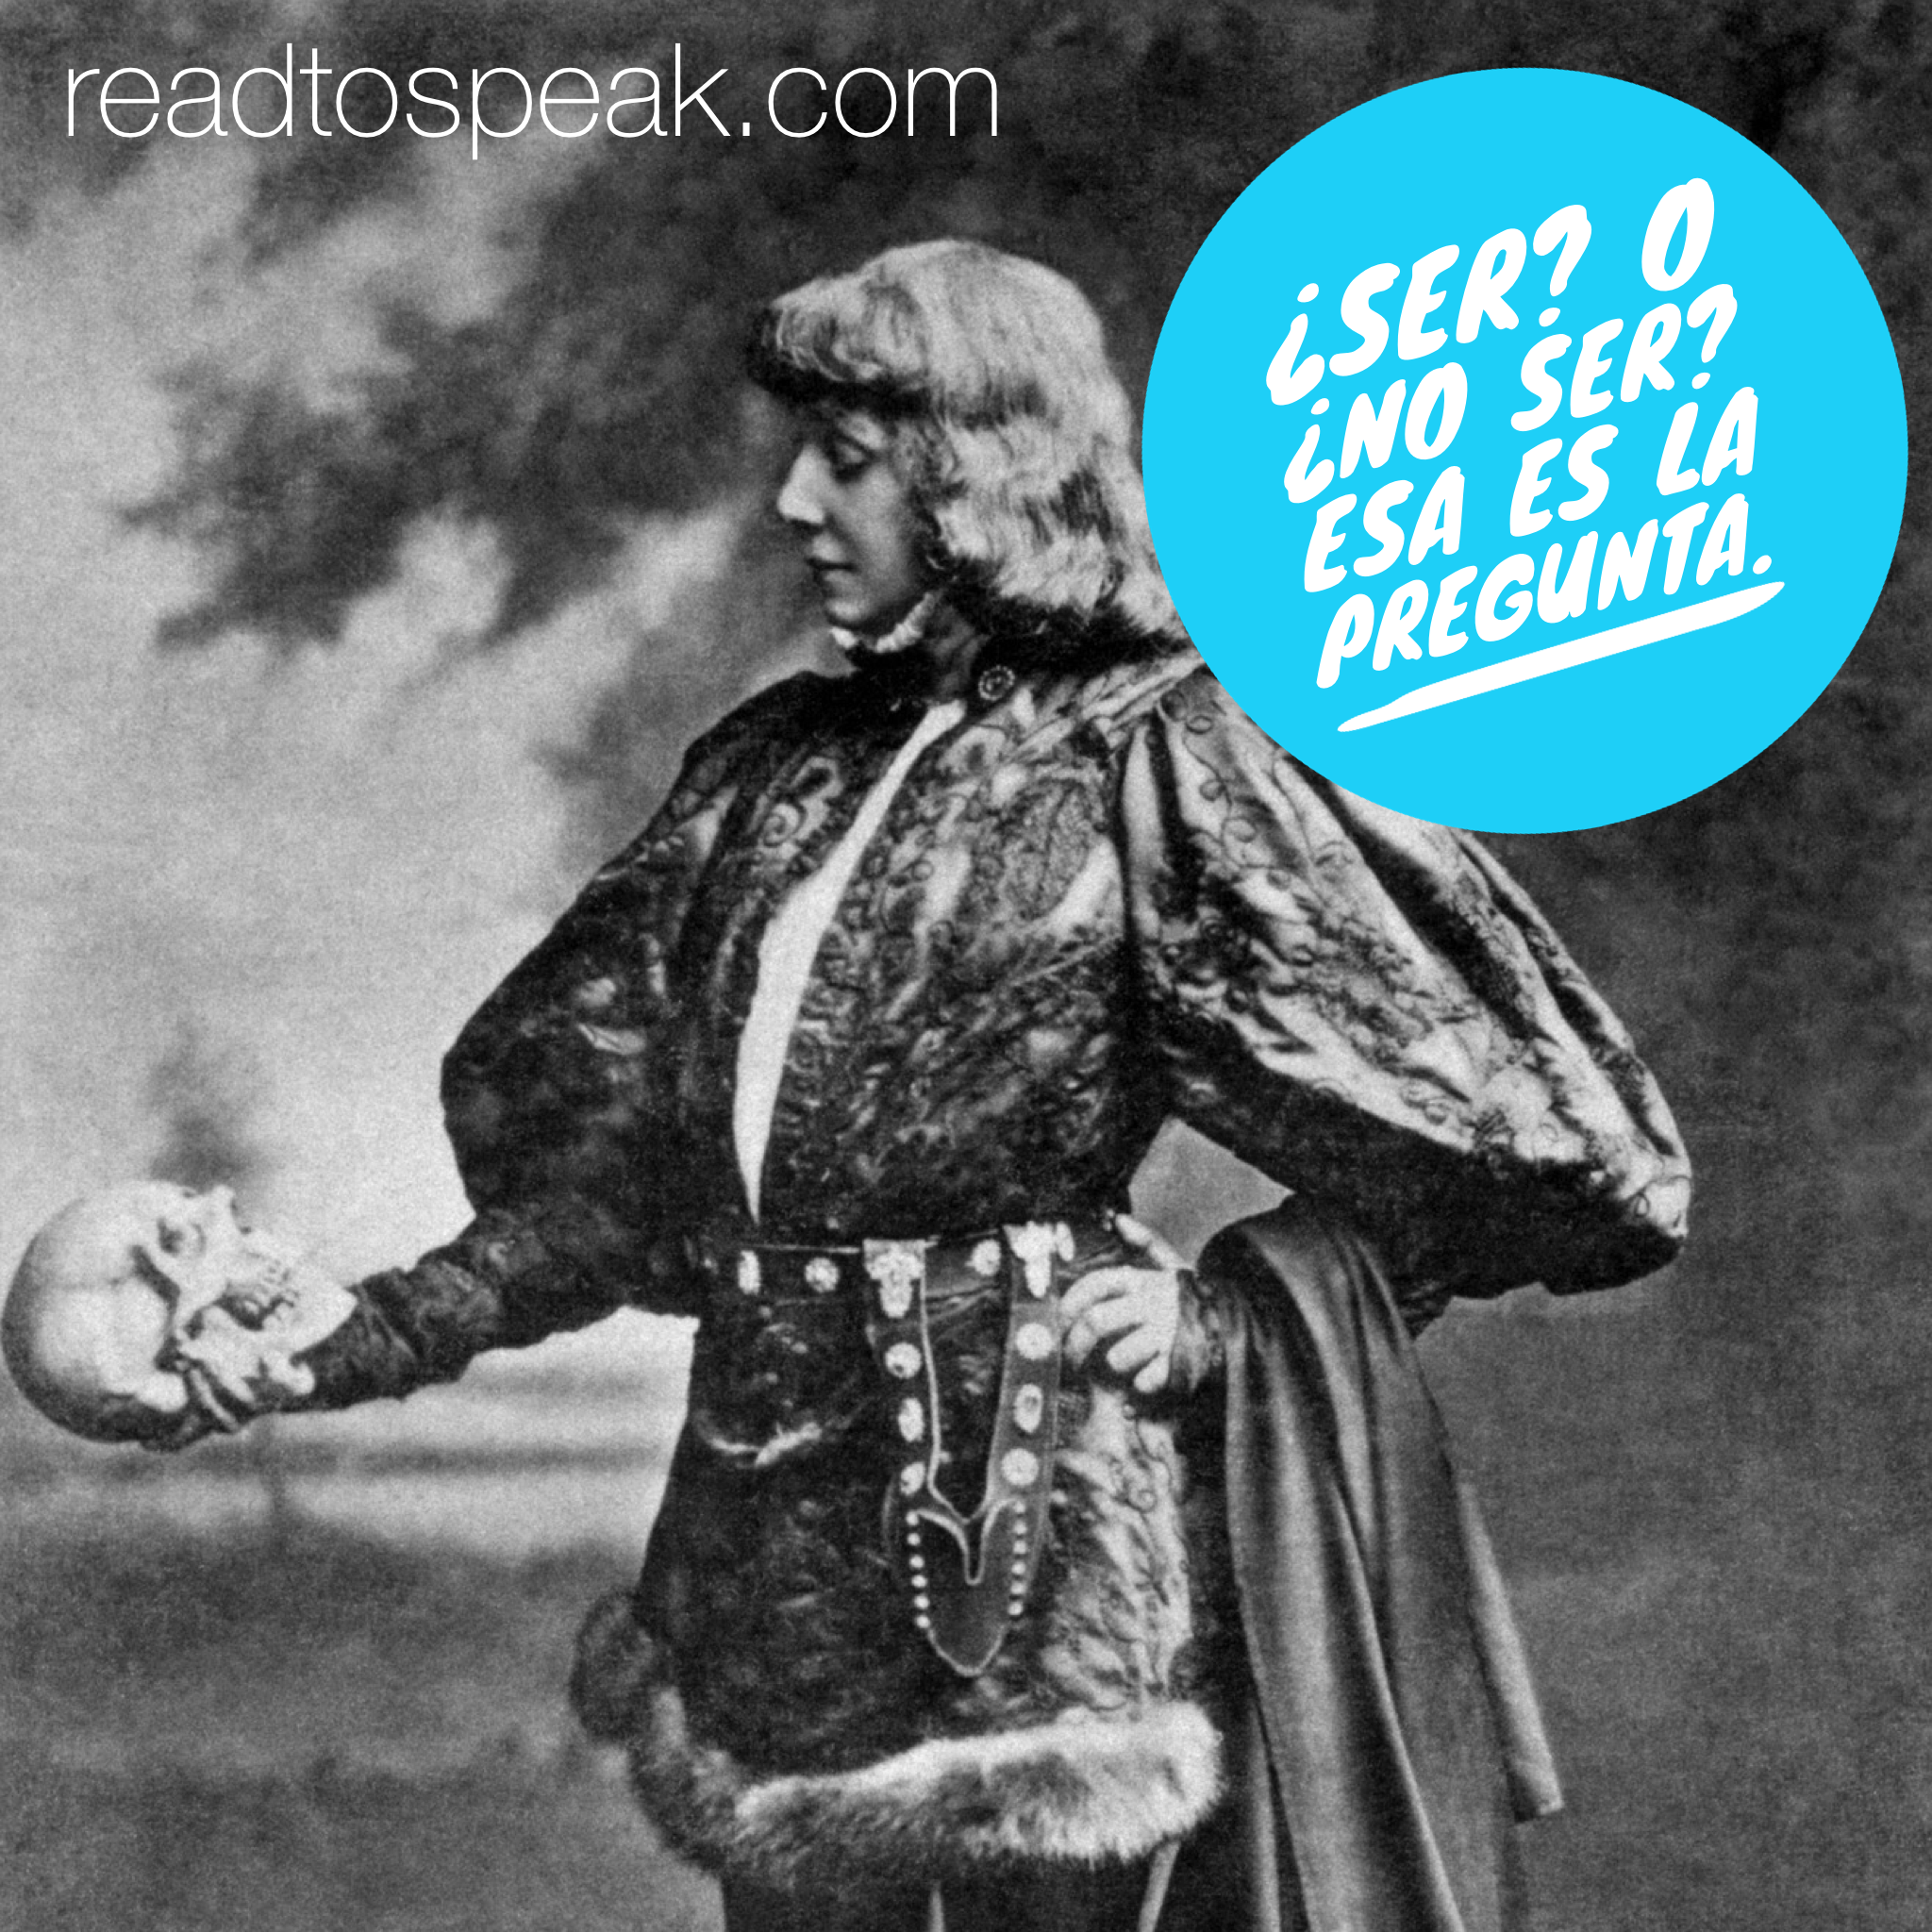 ¿Ser? o ¿no ser? - To be or not to be?